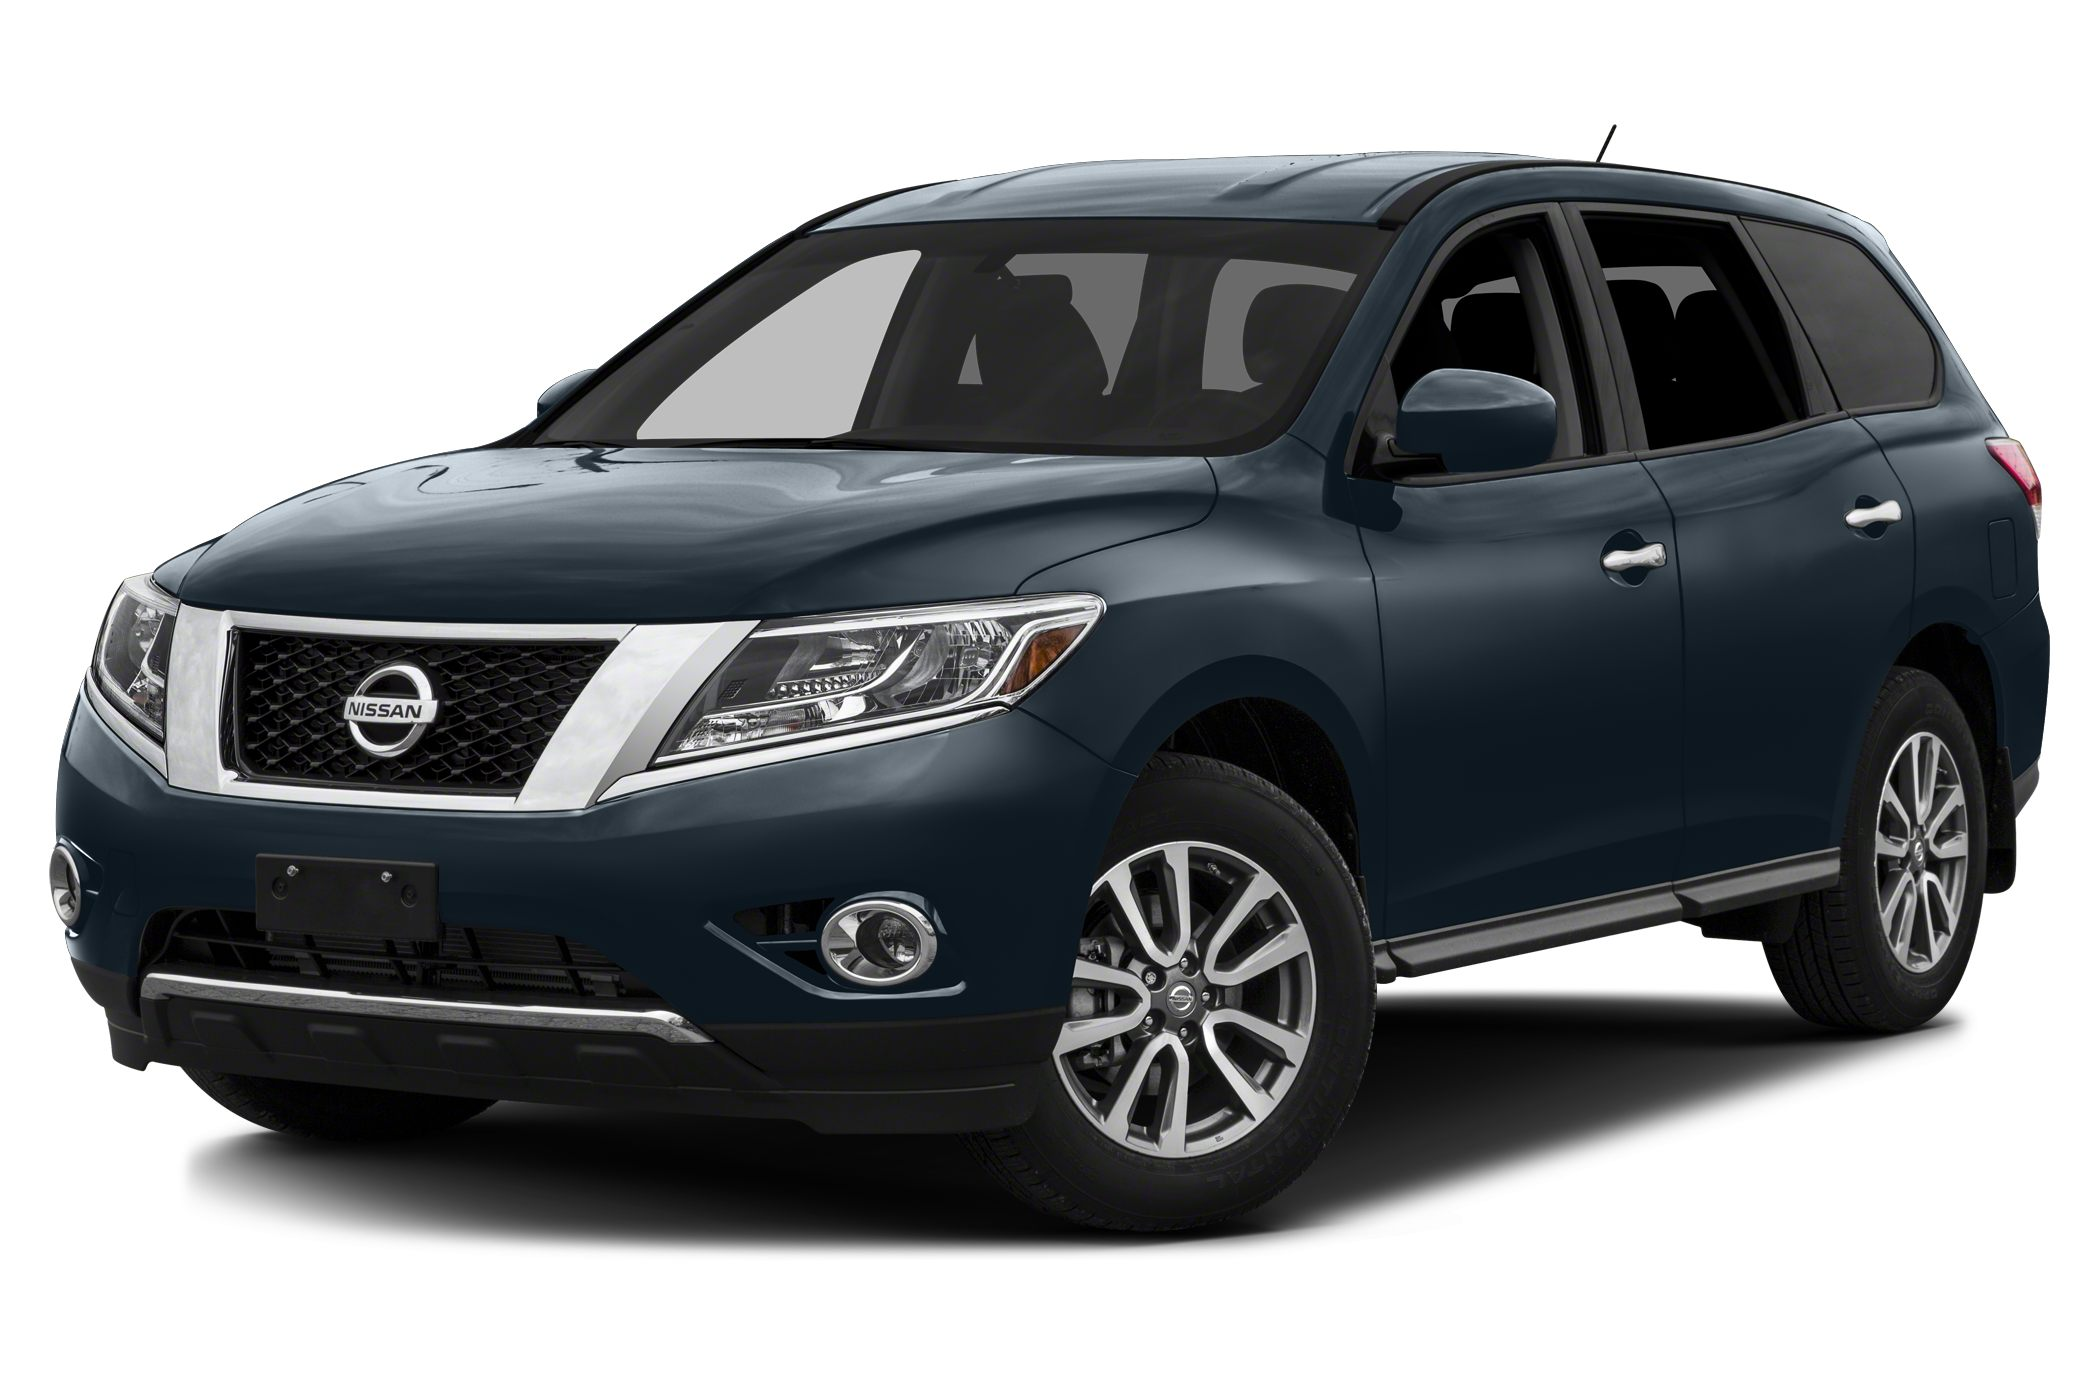 2013 Nissan Pathfinder SL SUV for sale in Longview for $26,482 with 24,399 miles.